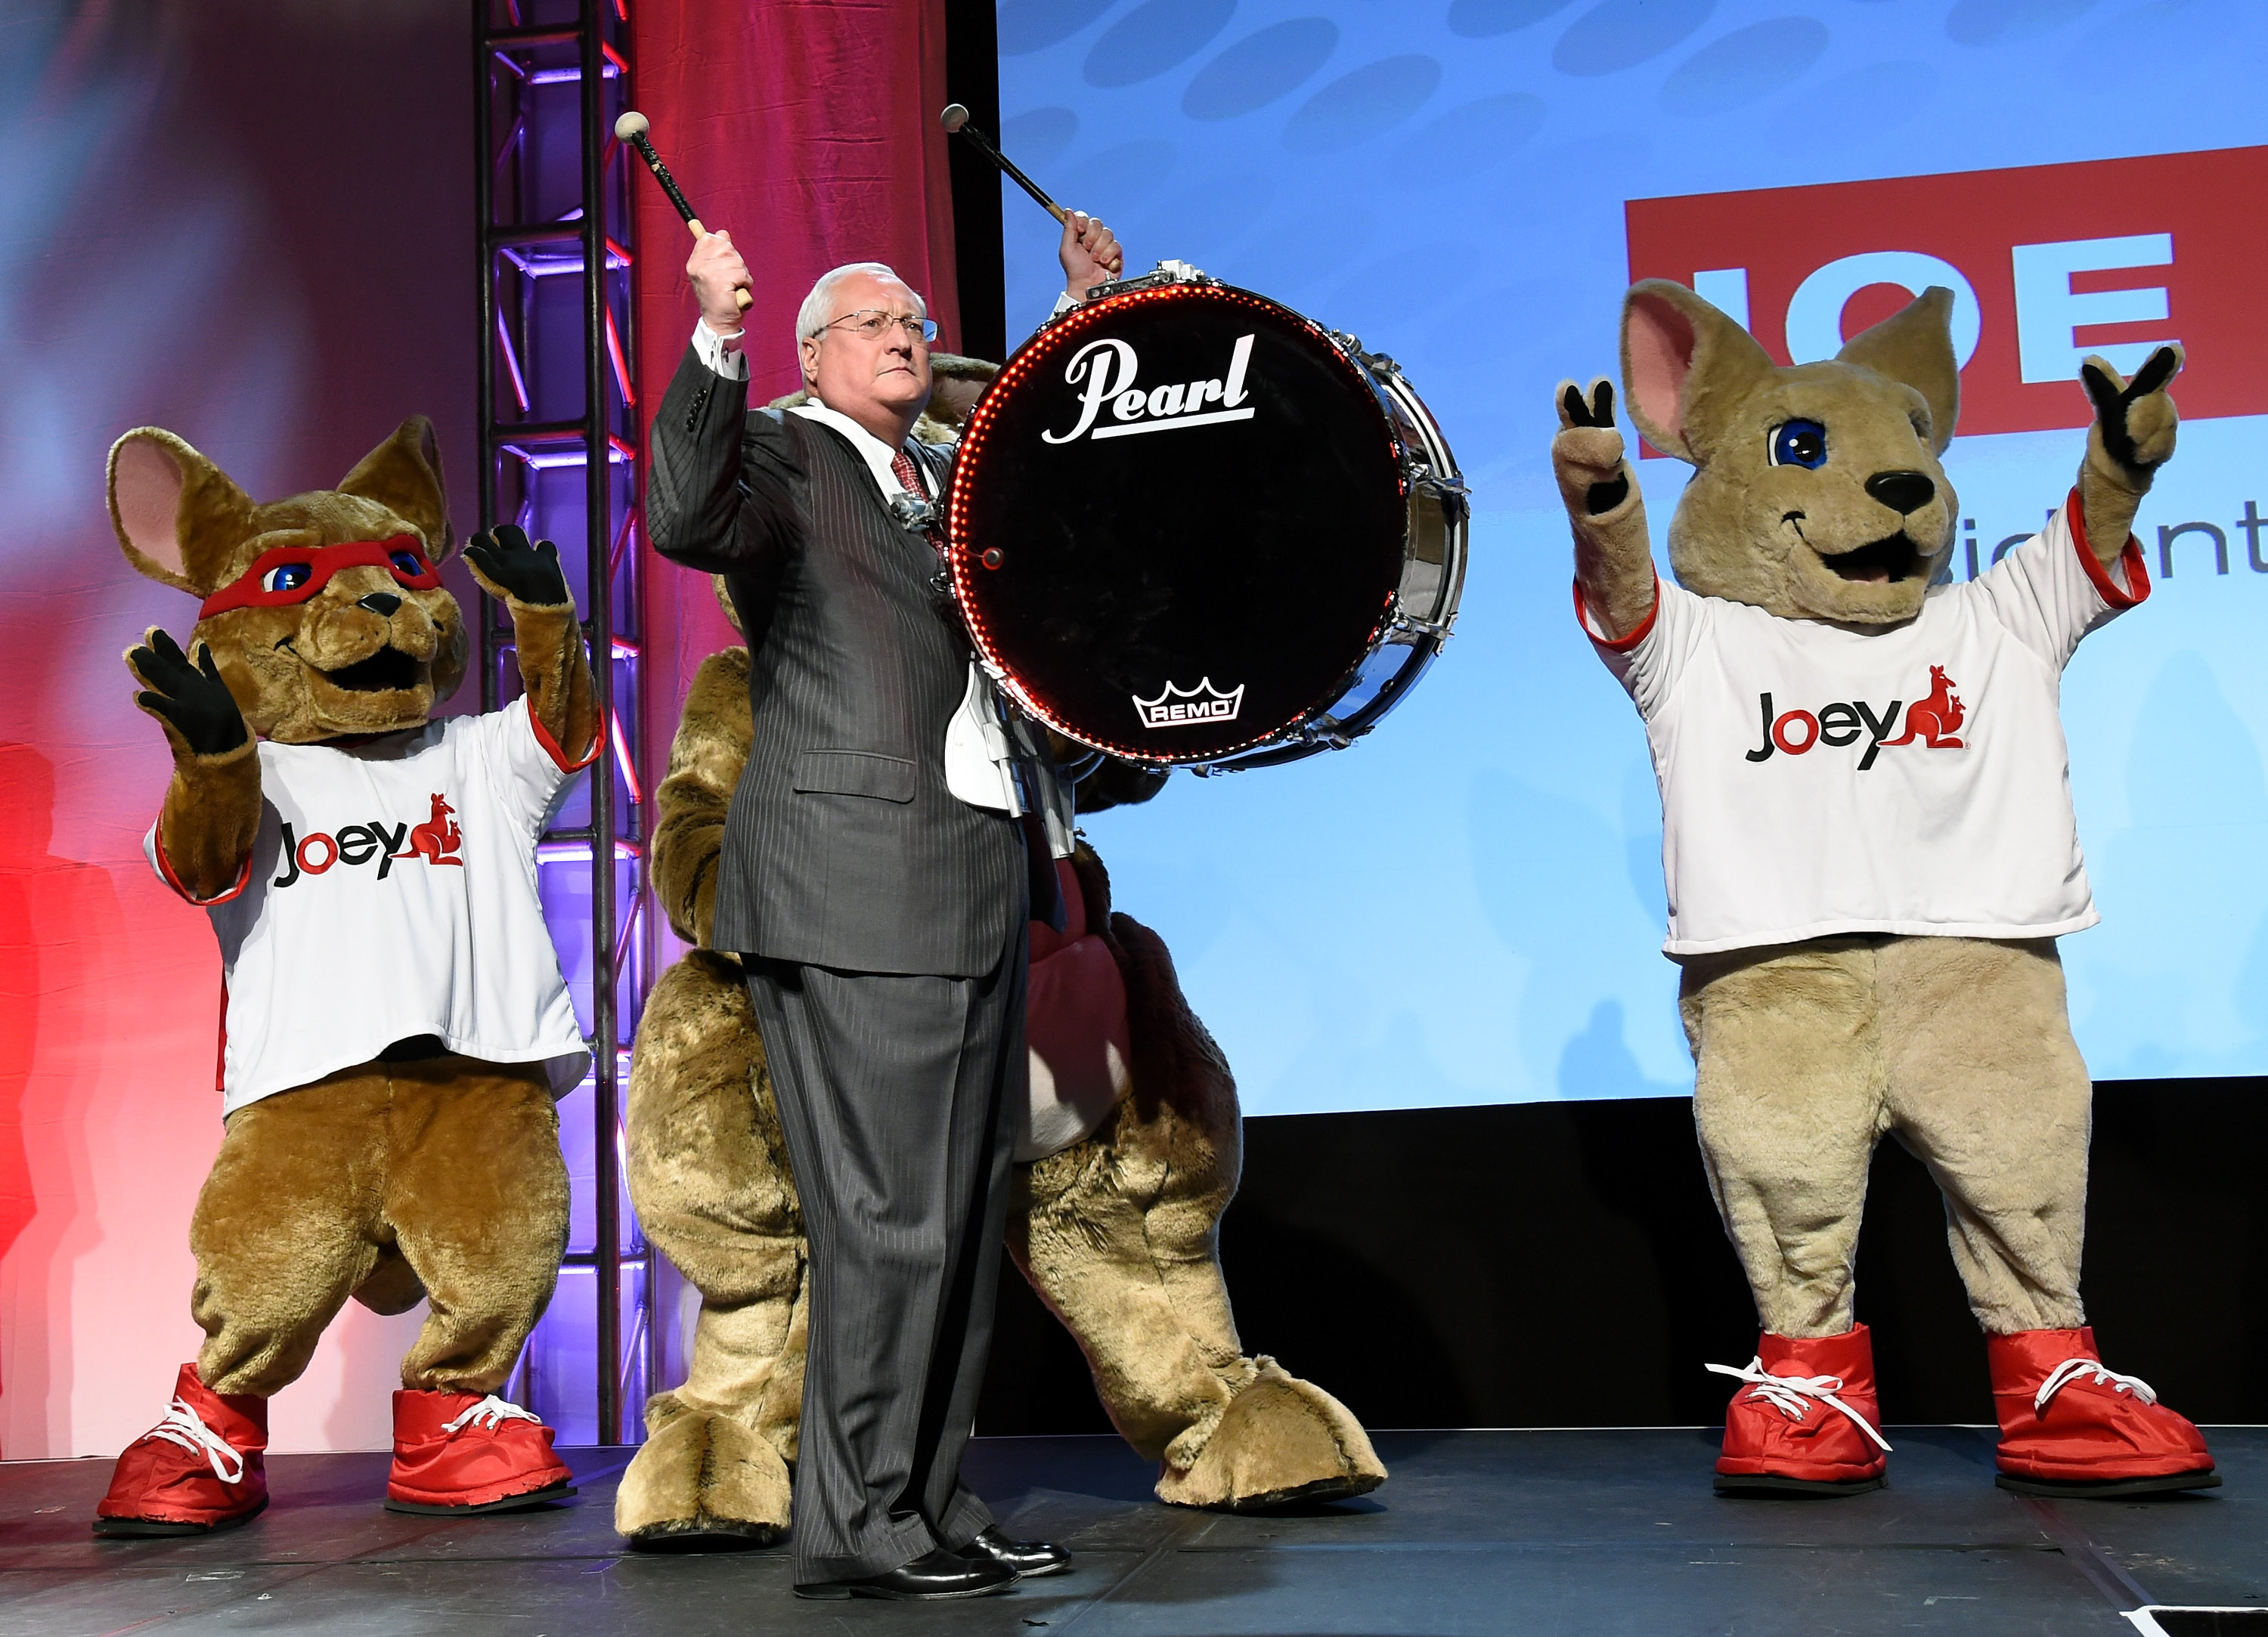 DISH President and CEO Joe Clayton makes his entrance playing a drum with kangaroo characters at a press event for DISH at the 2015 International CES on January 5, 2015 in Las Vegas, Nevada.